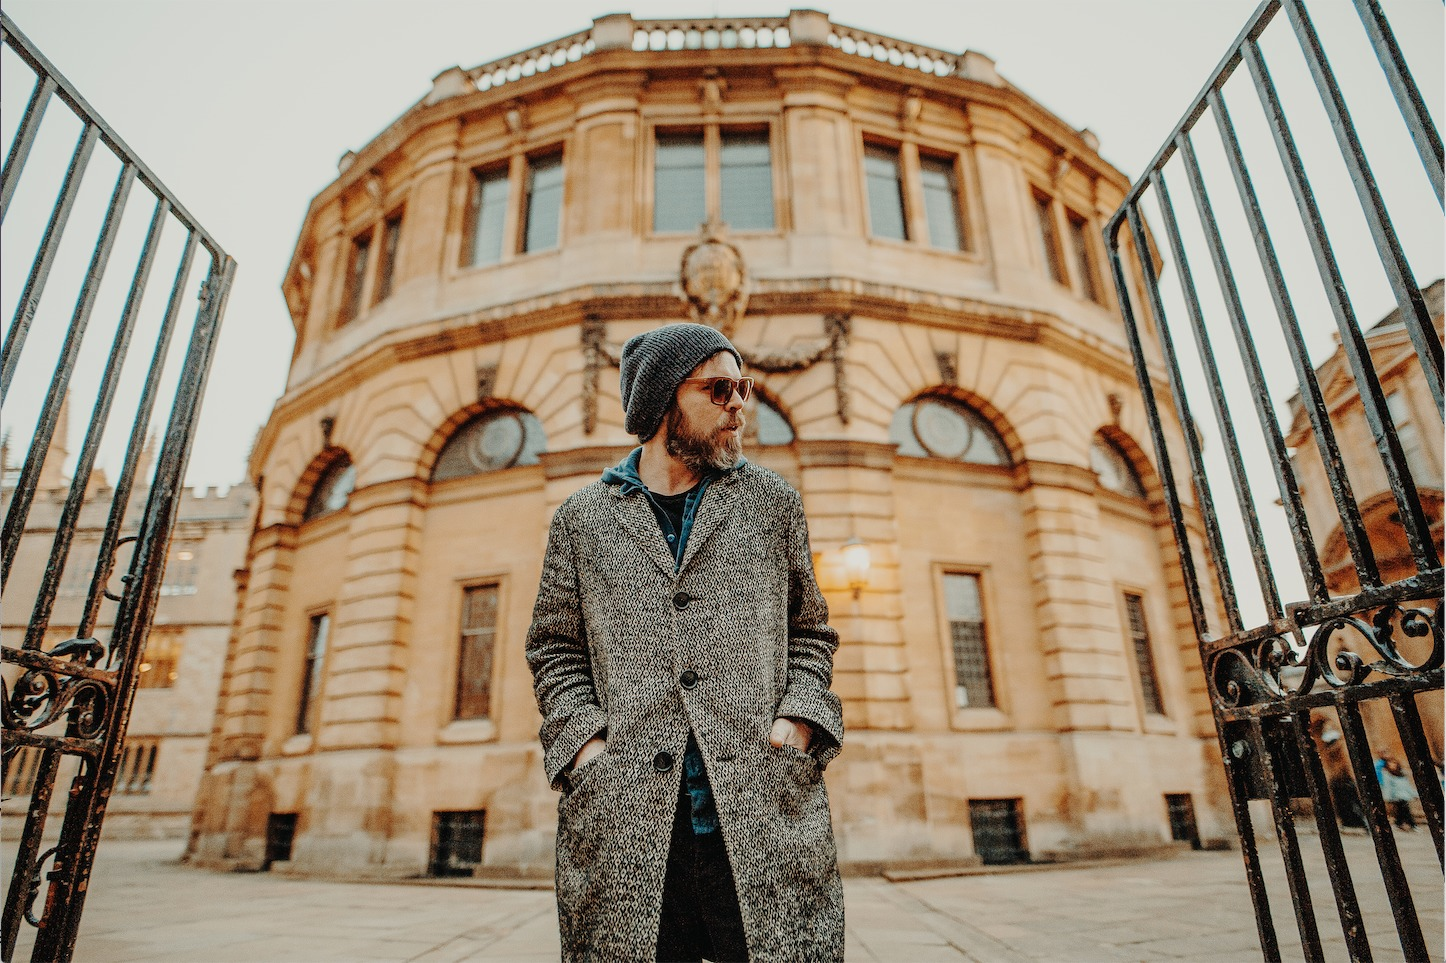 Gaz Coombes will celebrate 350th Oxford's Sheldonian Theatre's 350 years with charity gig